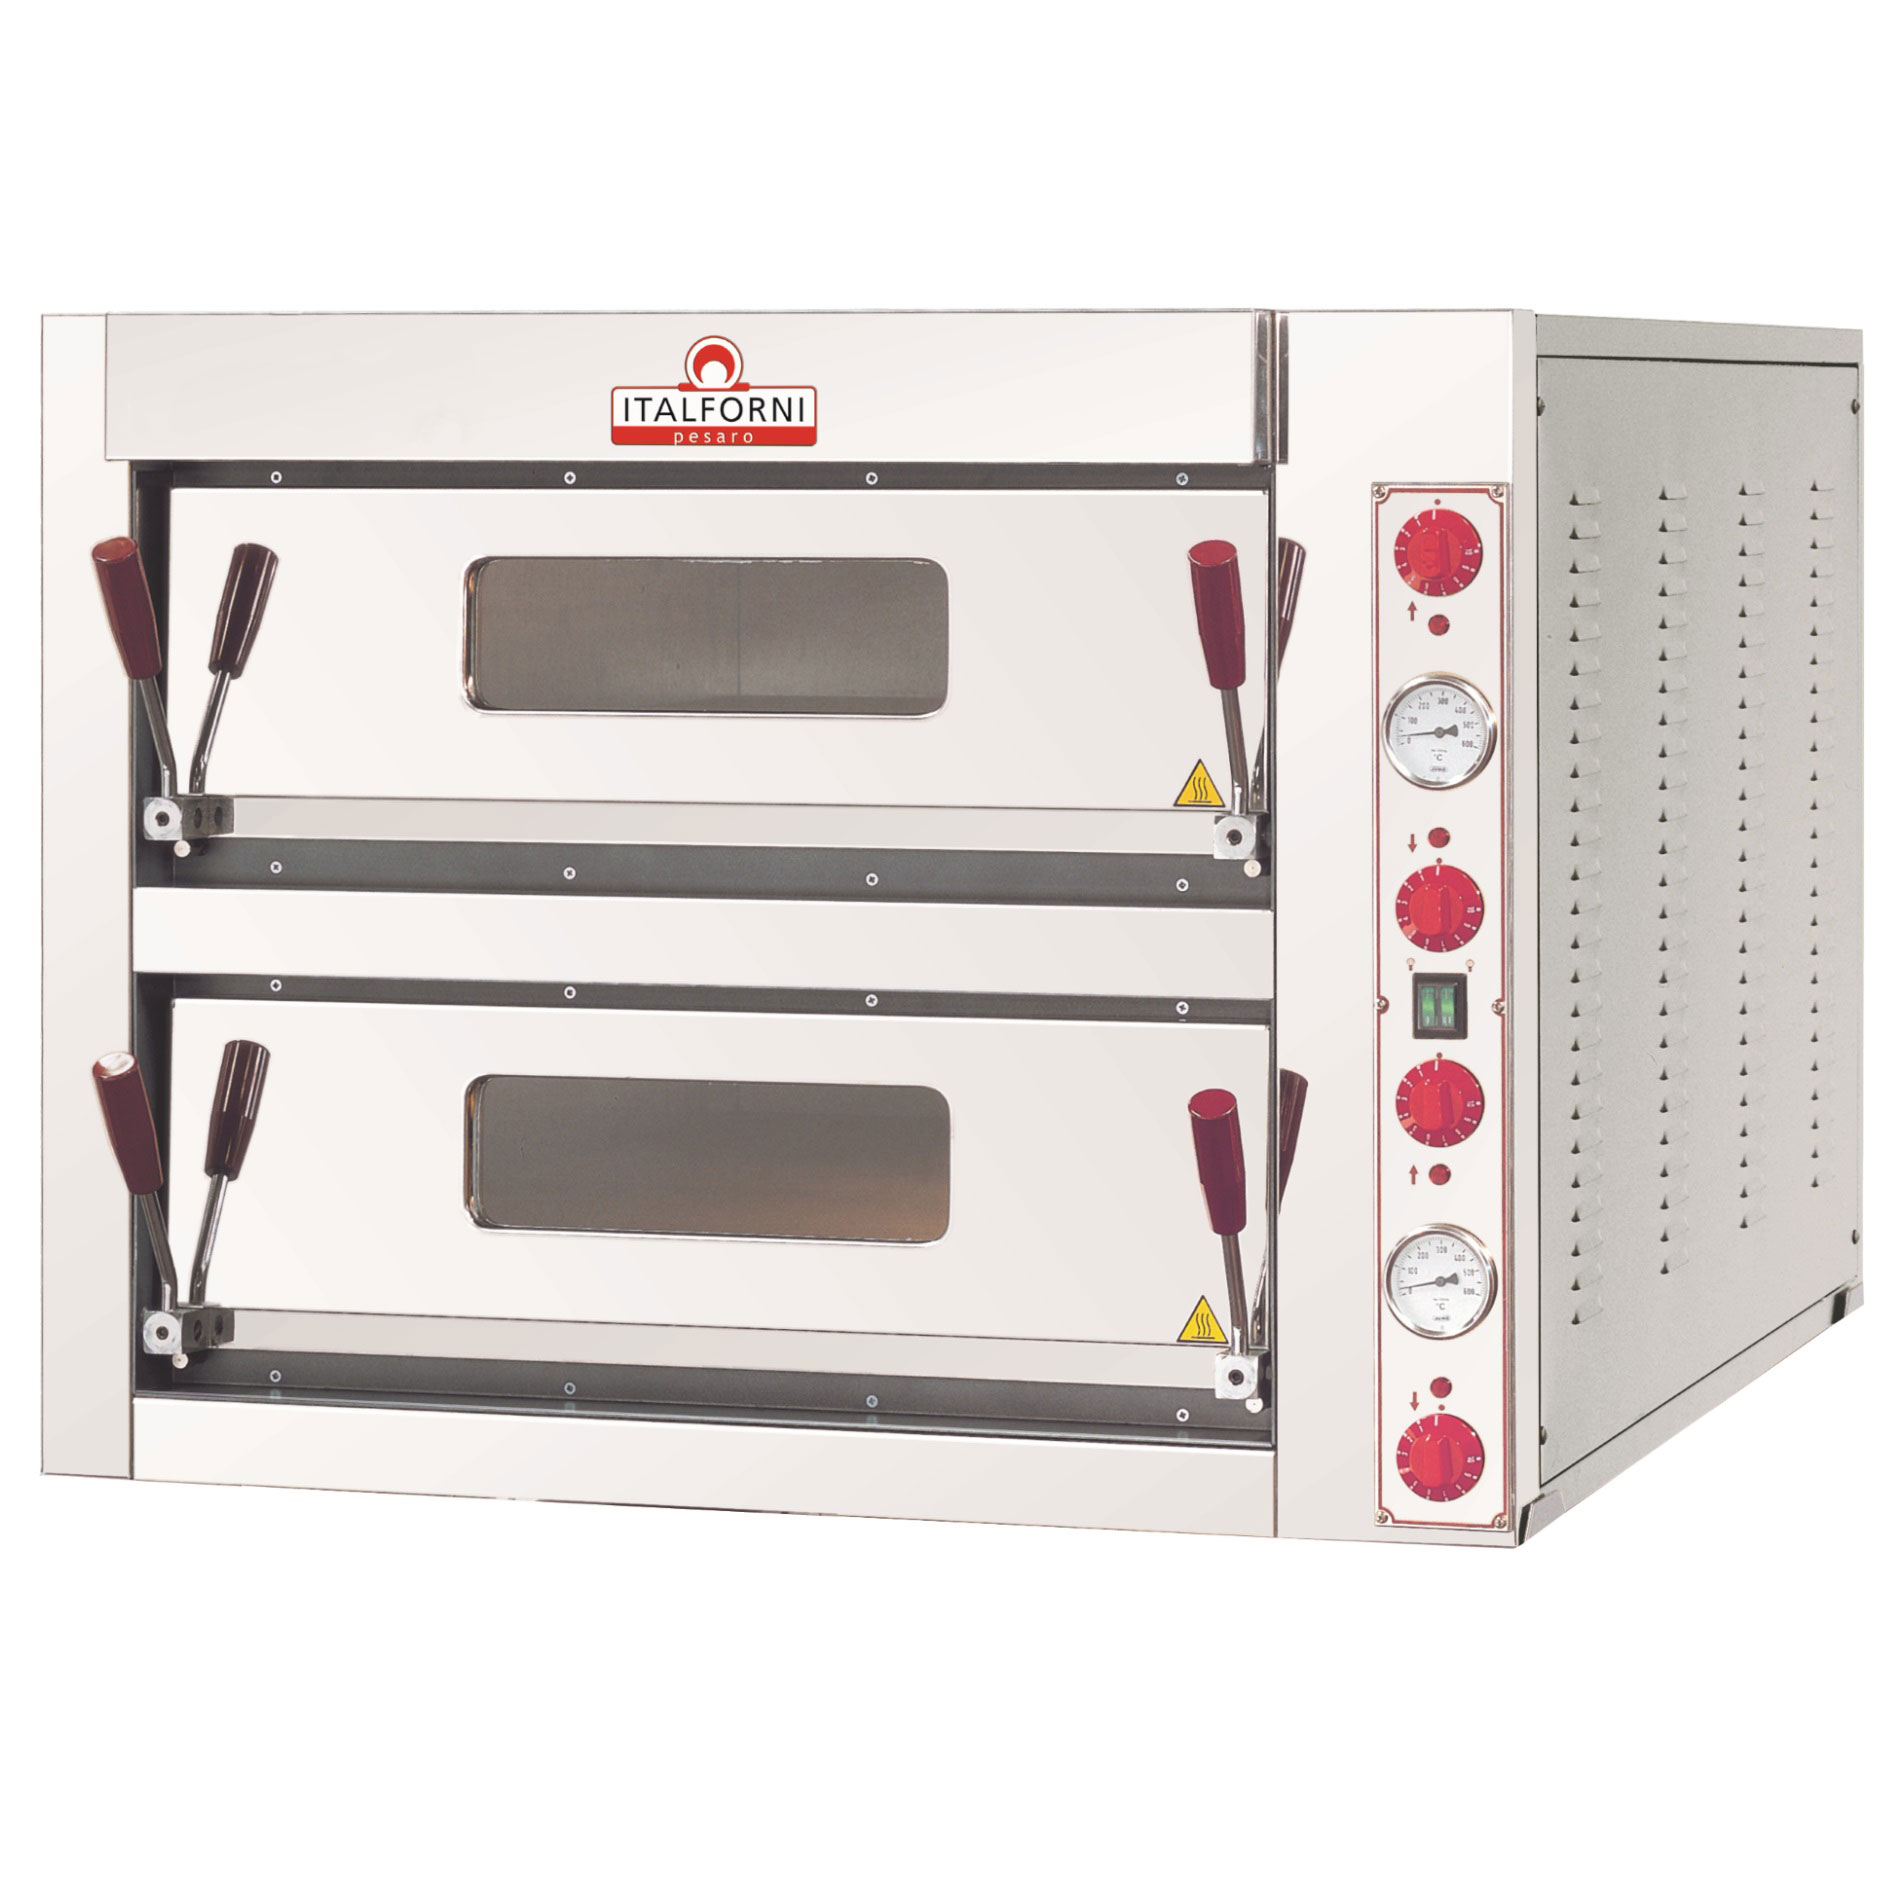 italforni double deck pizza oven tka2 4 4 euro pizza ovens. Black Bedroom Furniture Sets. Home Design Ideas